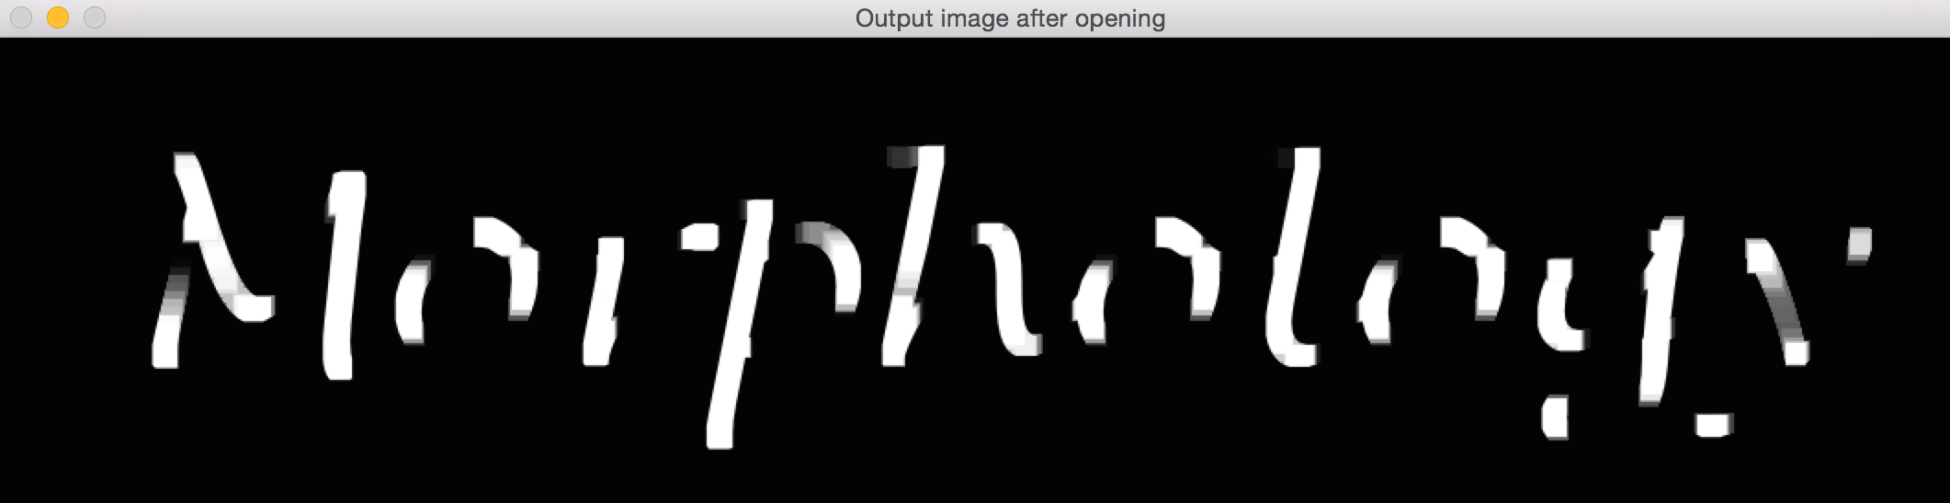 Other morphological operators - Learn OpenCV 4 By Building Projects